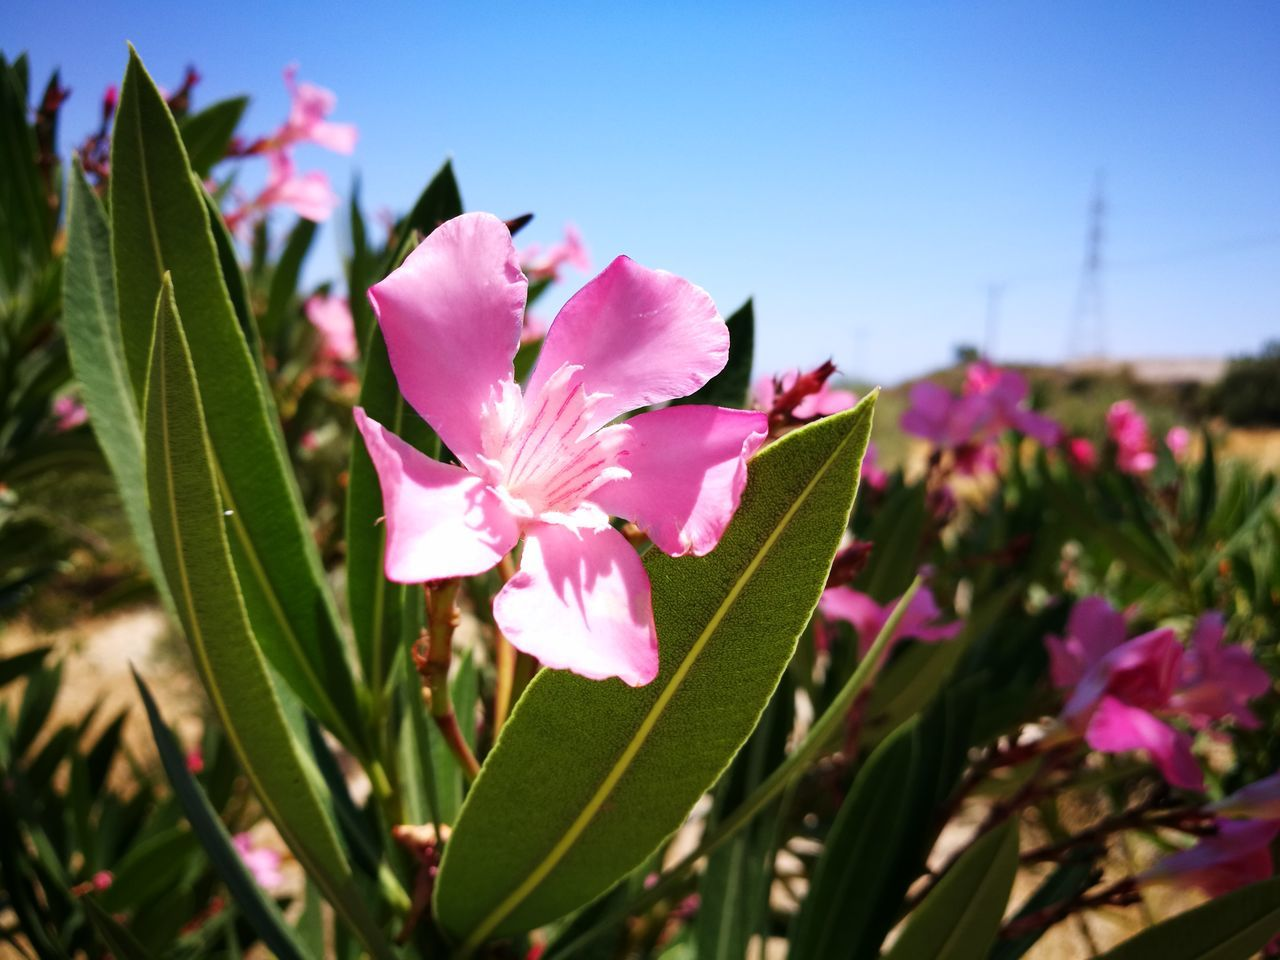 flower, petal, beauty in nature, fragility, nature, growth, freshness, leaf, plant, pink color, flower head, no people, blooming, day, outdoors, close-up, clear sky, periwinkle